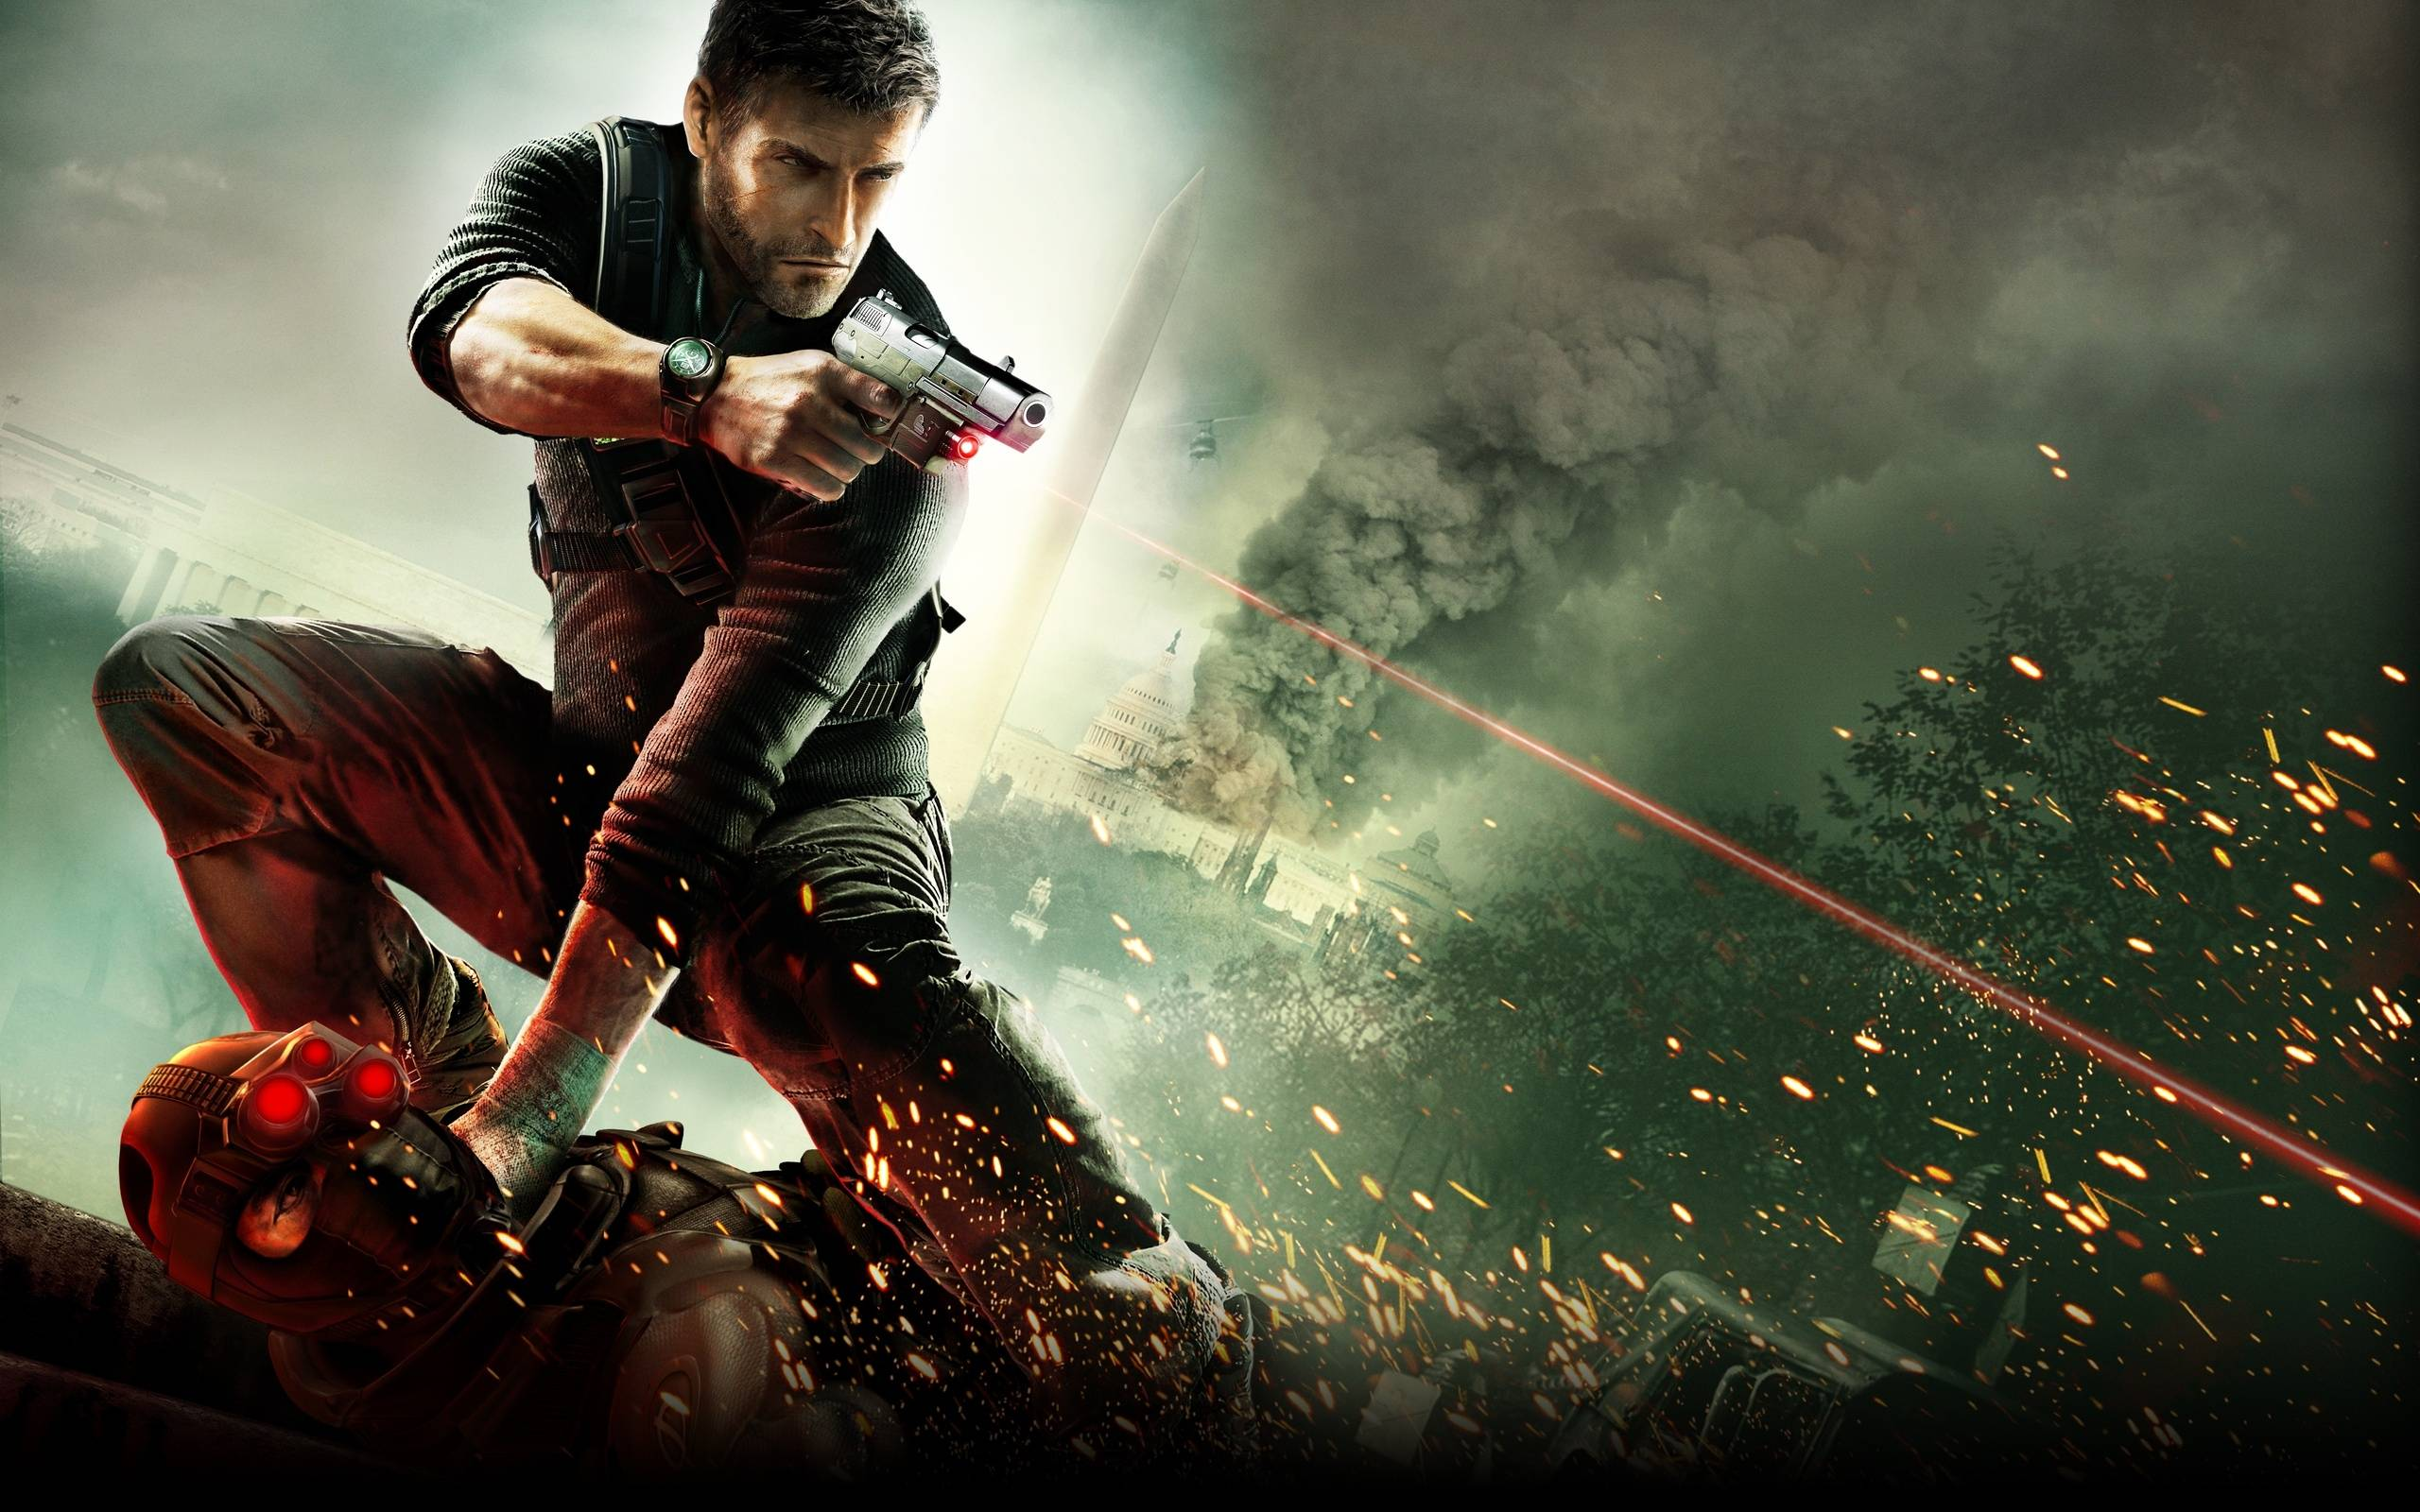 Splinter Cell Conviction - Imagem KeyArt